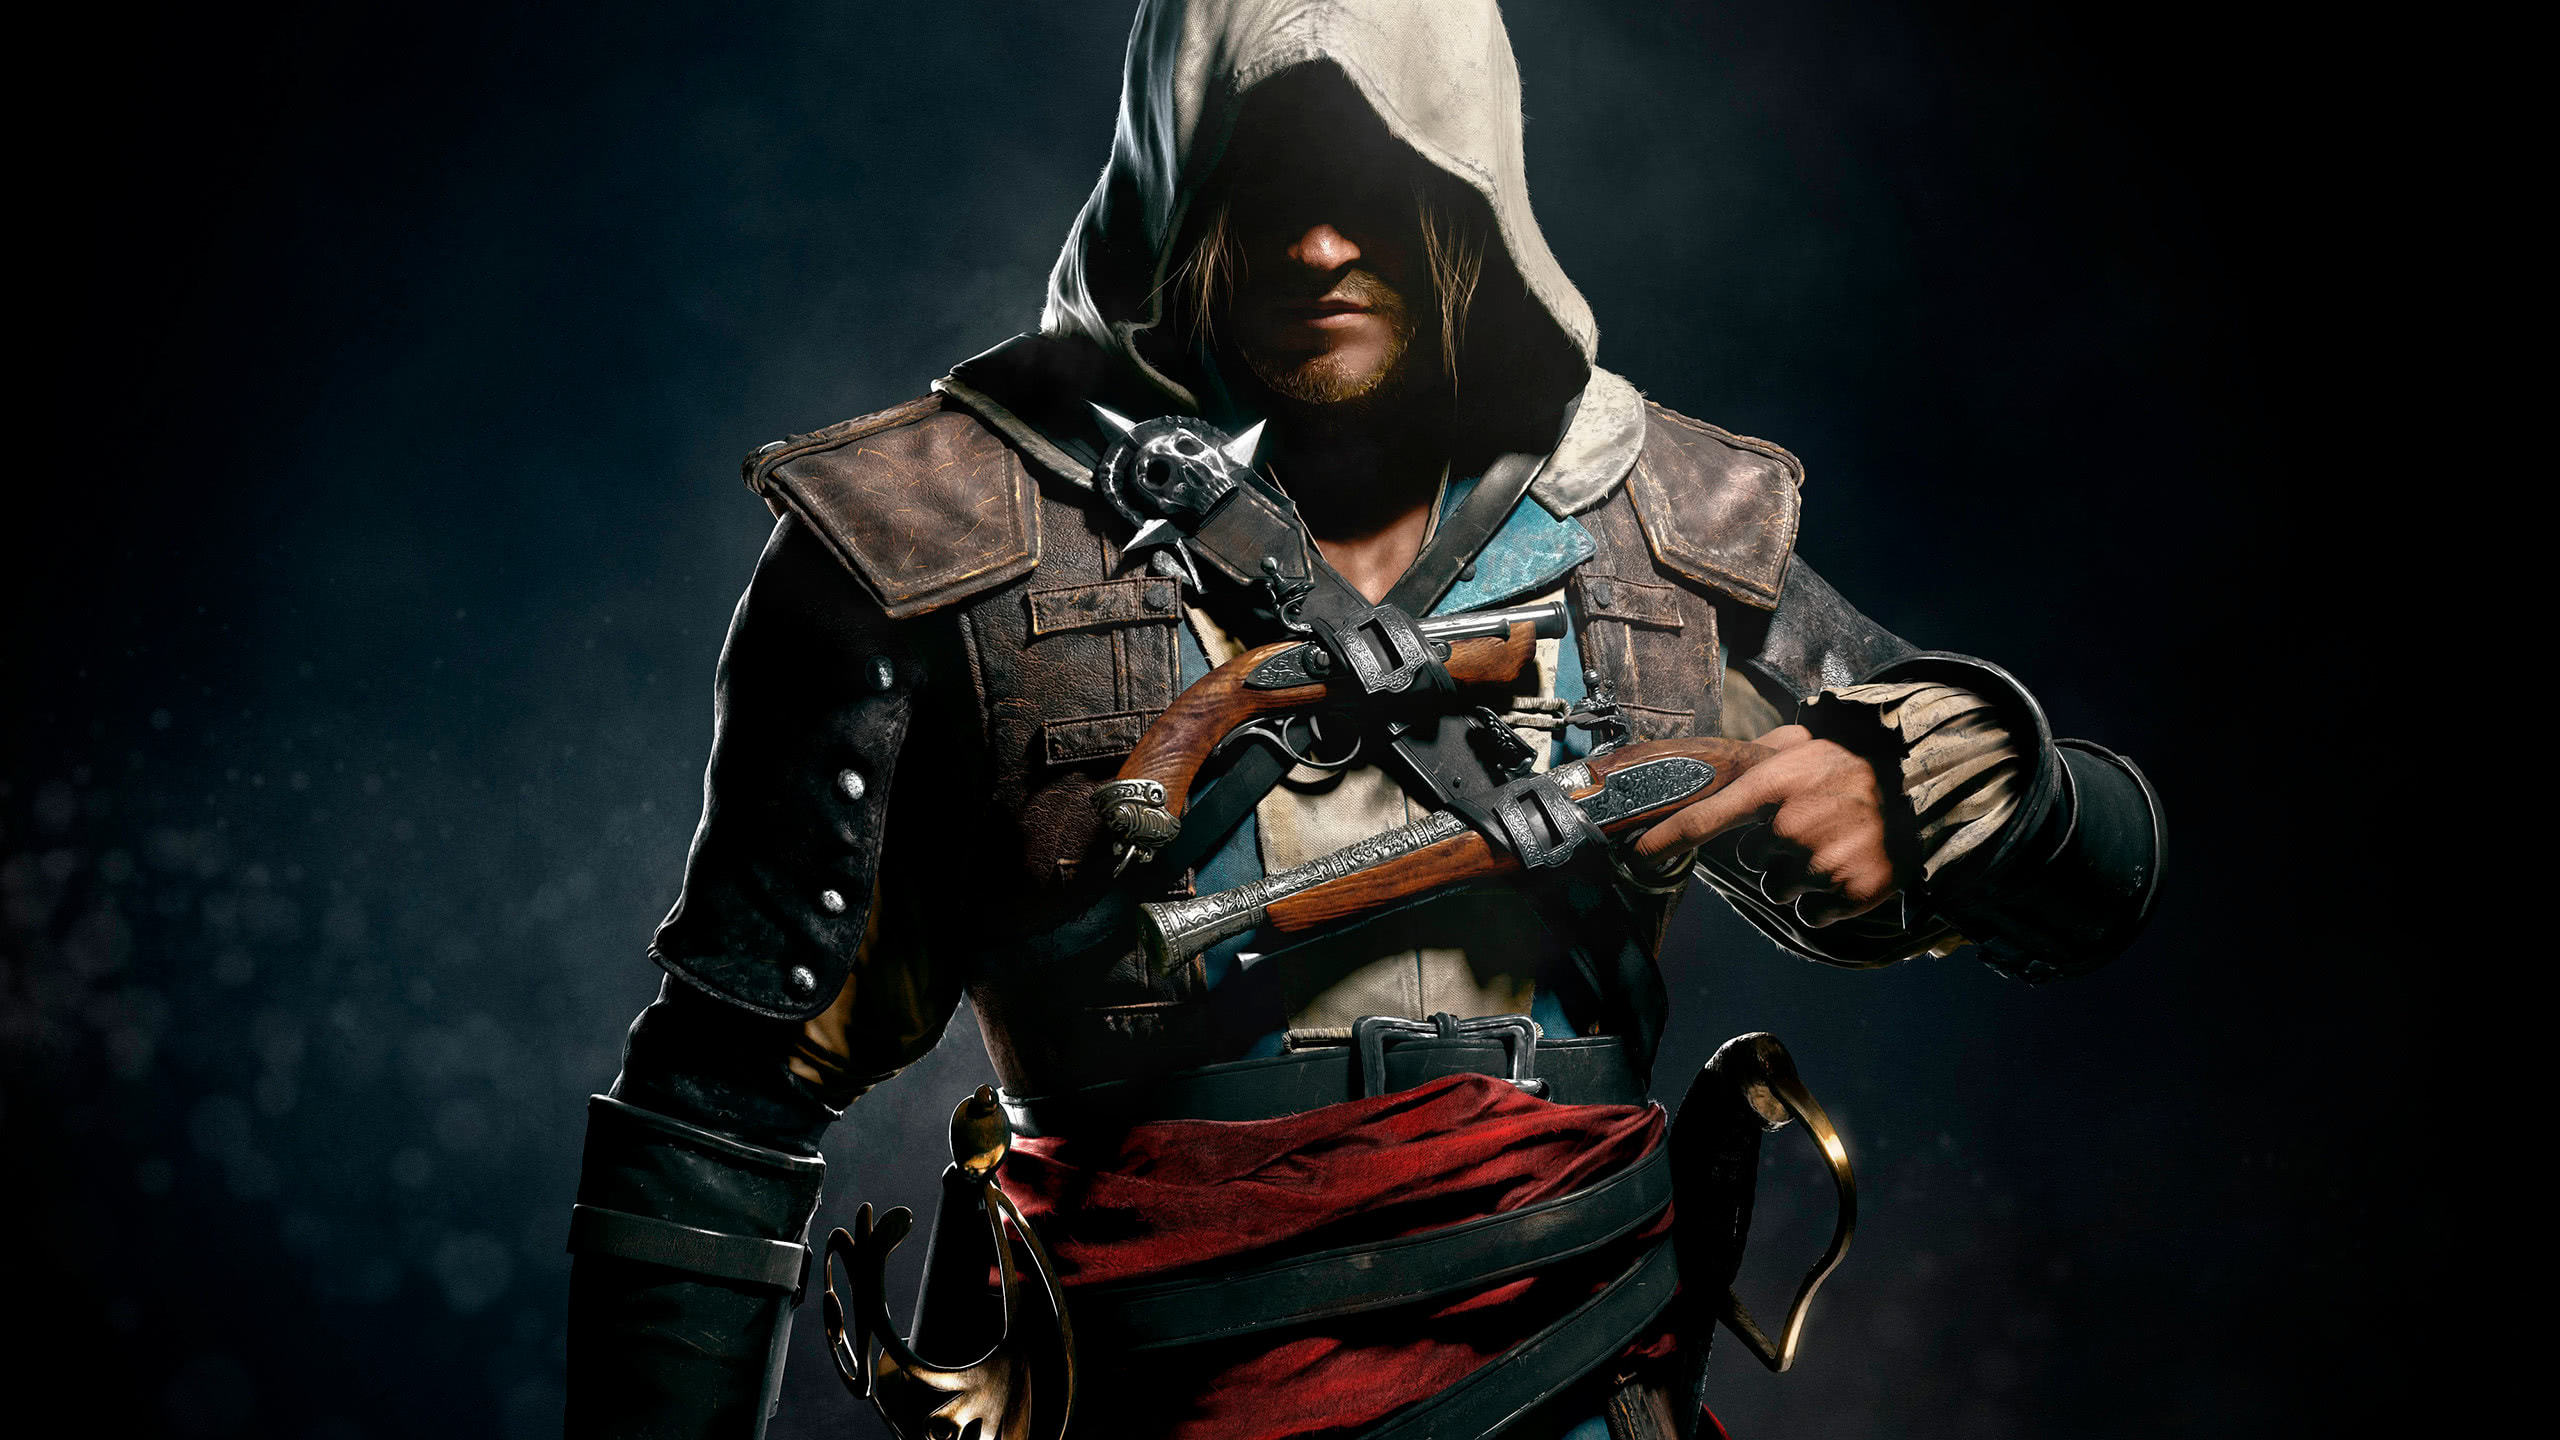 assassins creed 4 black flag edward kenway wqhd 1440p wallpaper